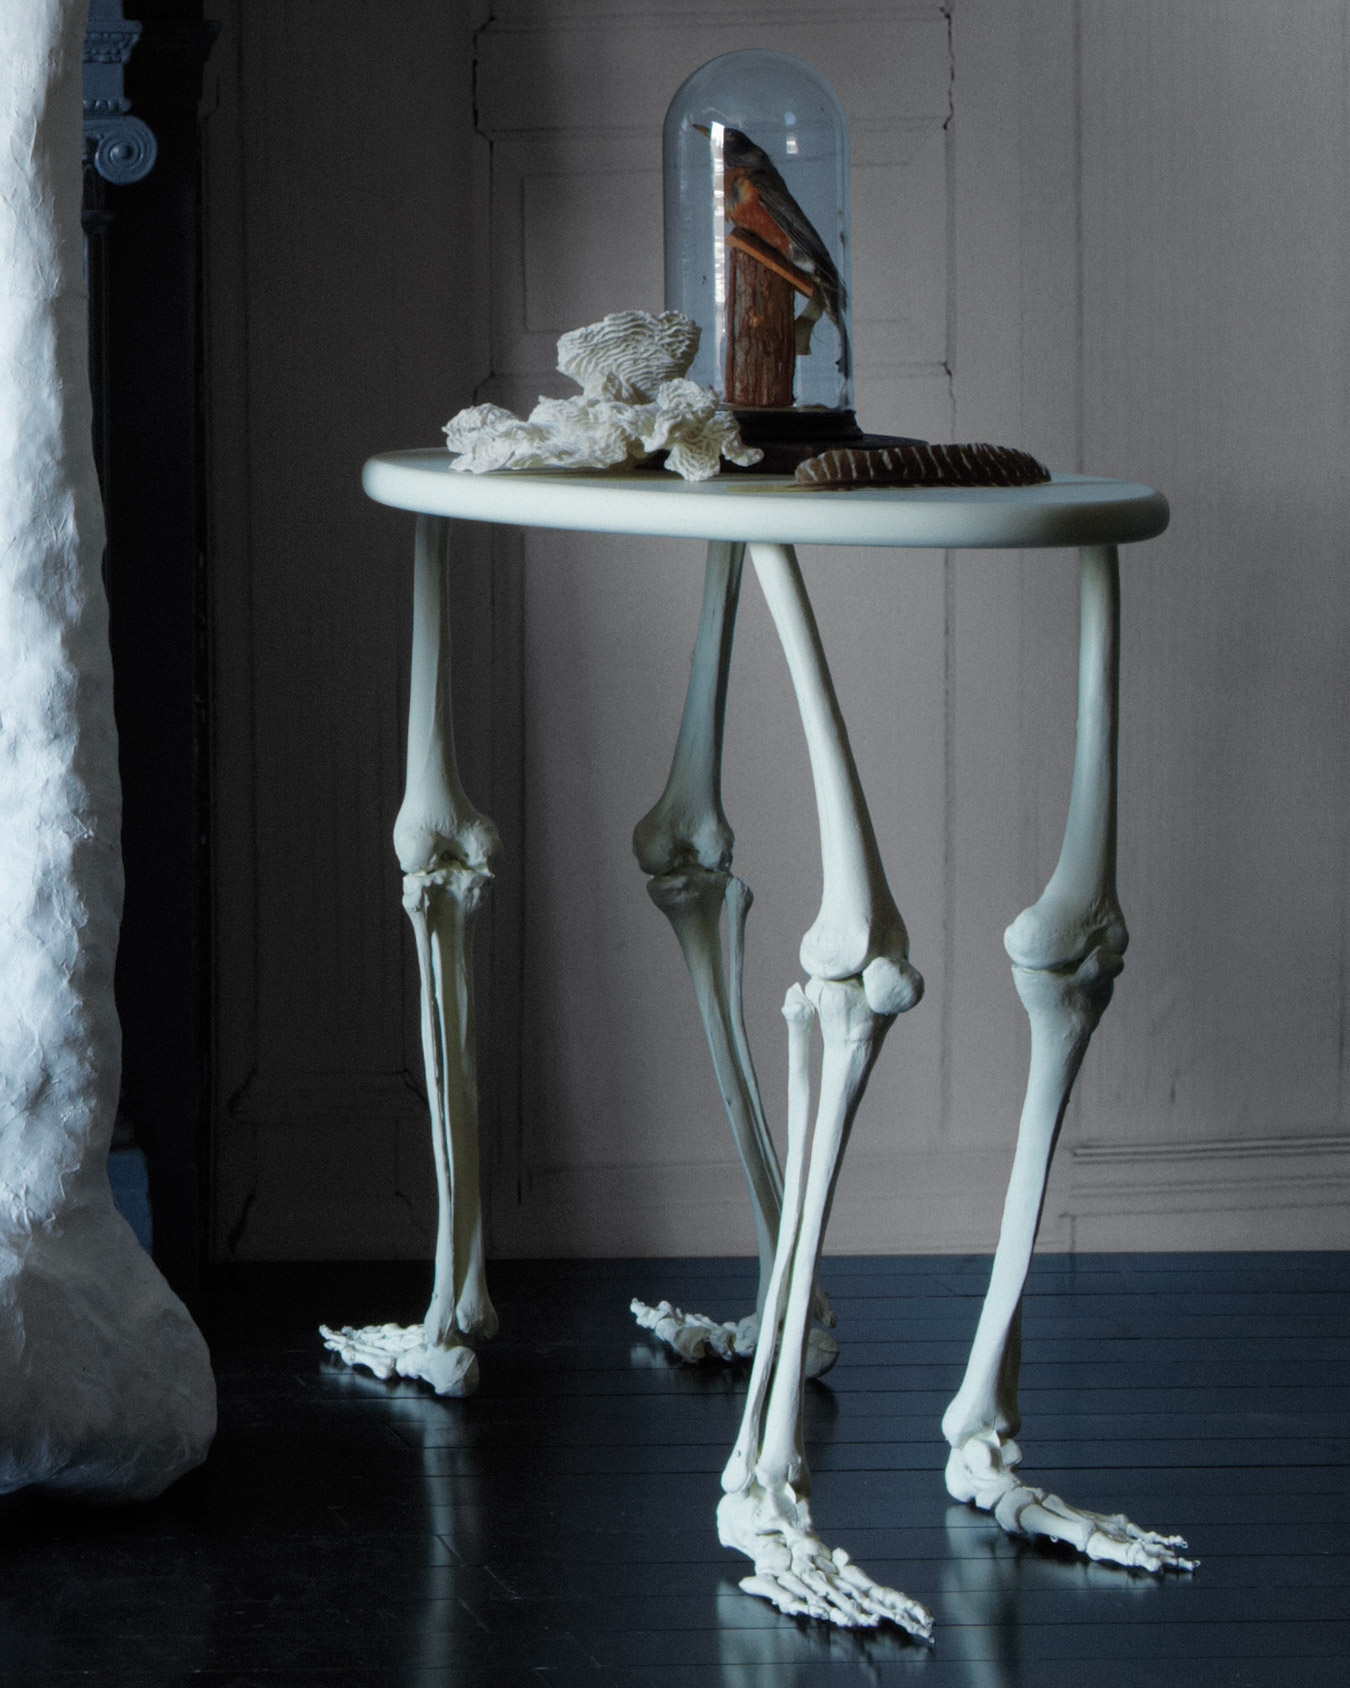 Frankenstein saw inspiration in the most grotesque of scavenging—here, we took a note from his book and constructed a bare-bones table decoration. The table legs are legs indeed—store-bought faux bones. To make it, trim the thigh bones: Use saw to cut the legs to 1 inch less than the desired table height (to account for tabletop). Next, stabilize the knees: Take each leg apart at the knee; unscrew the hardware, and remove the kneecap. Connect shin bone to thighbone with one double-threaded screw (3/16-by-3 inches). Lastly, stabilize the ankles: Position one foot so it rests flat on the floor, and generously squeeze epoxy into the hinge that makes the ankle flex. Repeat with the remaining legs. Let it dry and cure overnight at least before moving onto the next step. Attach the legs to the table: Decide where you want the legs, and drill pilot holes through tabletop. Place each leg underneath the pilot hole, then screw to attach. Put putty over the screws, and let it dry. Sand until smooth. Paint the tabletop a skeletal white.